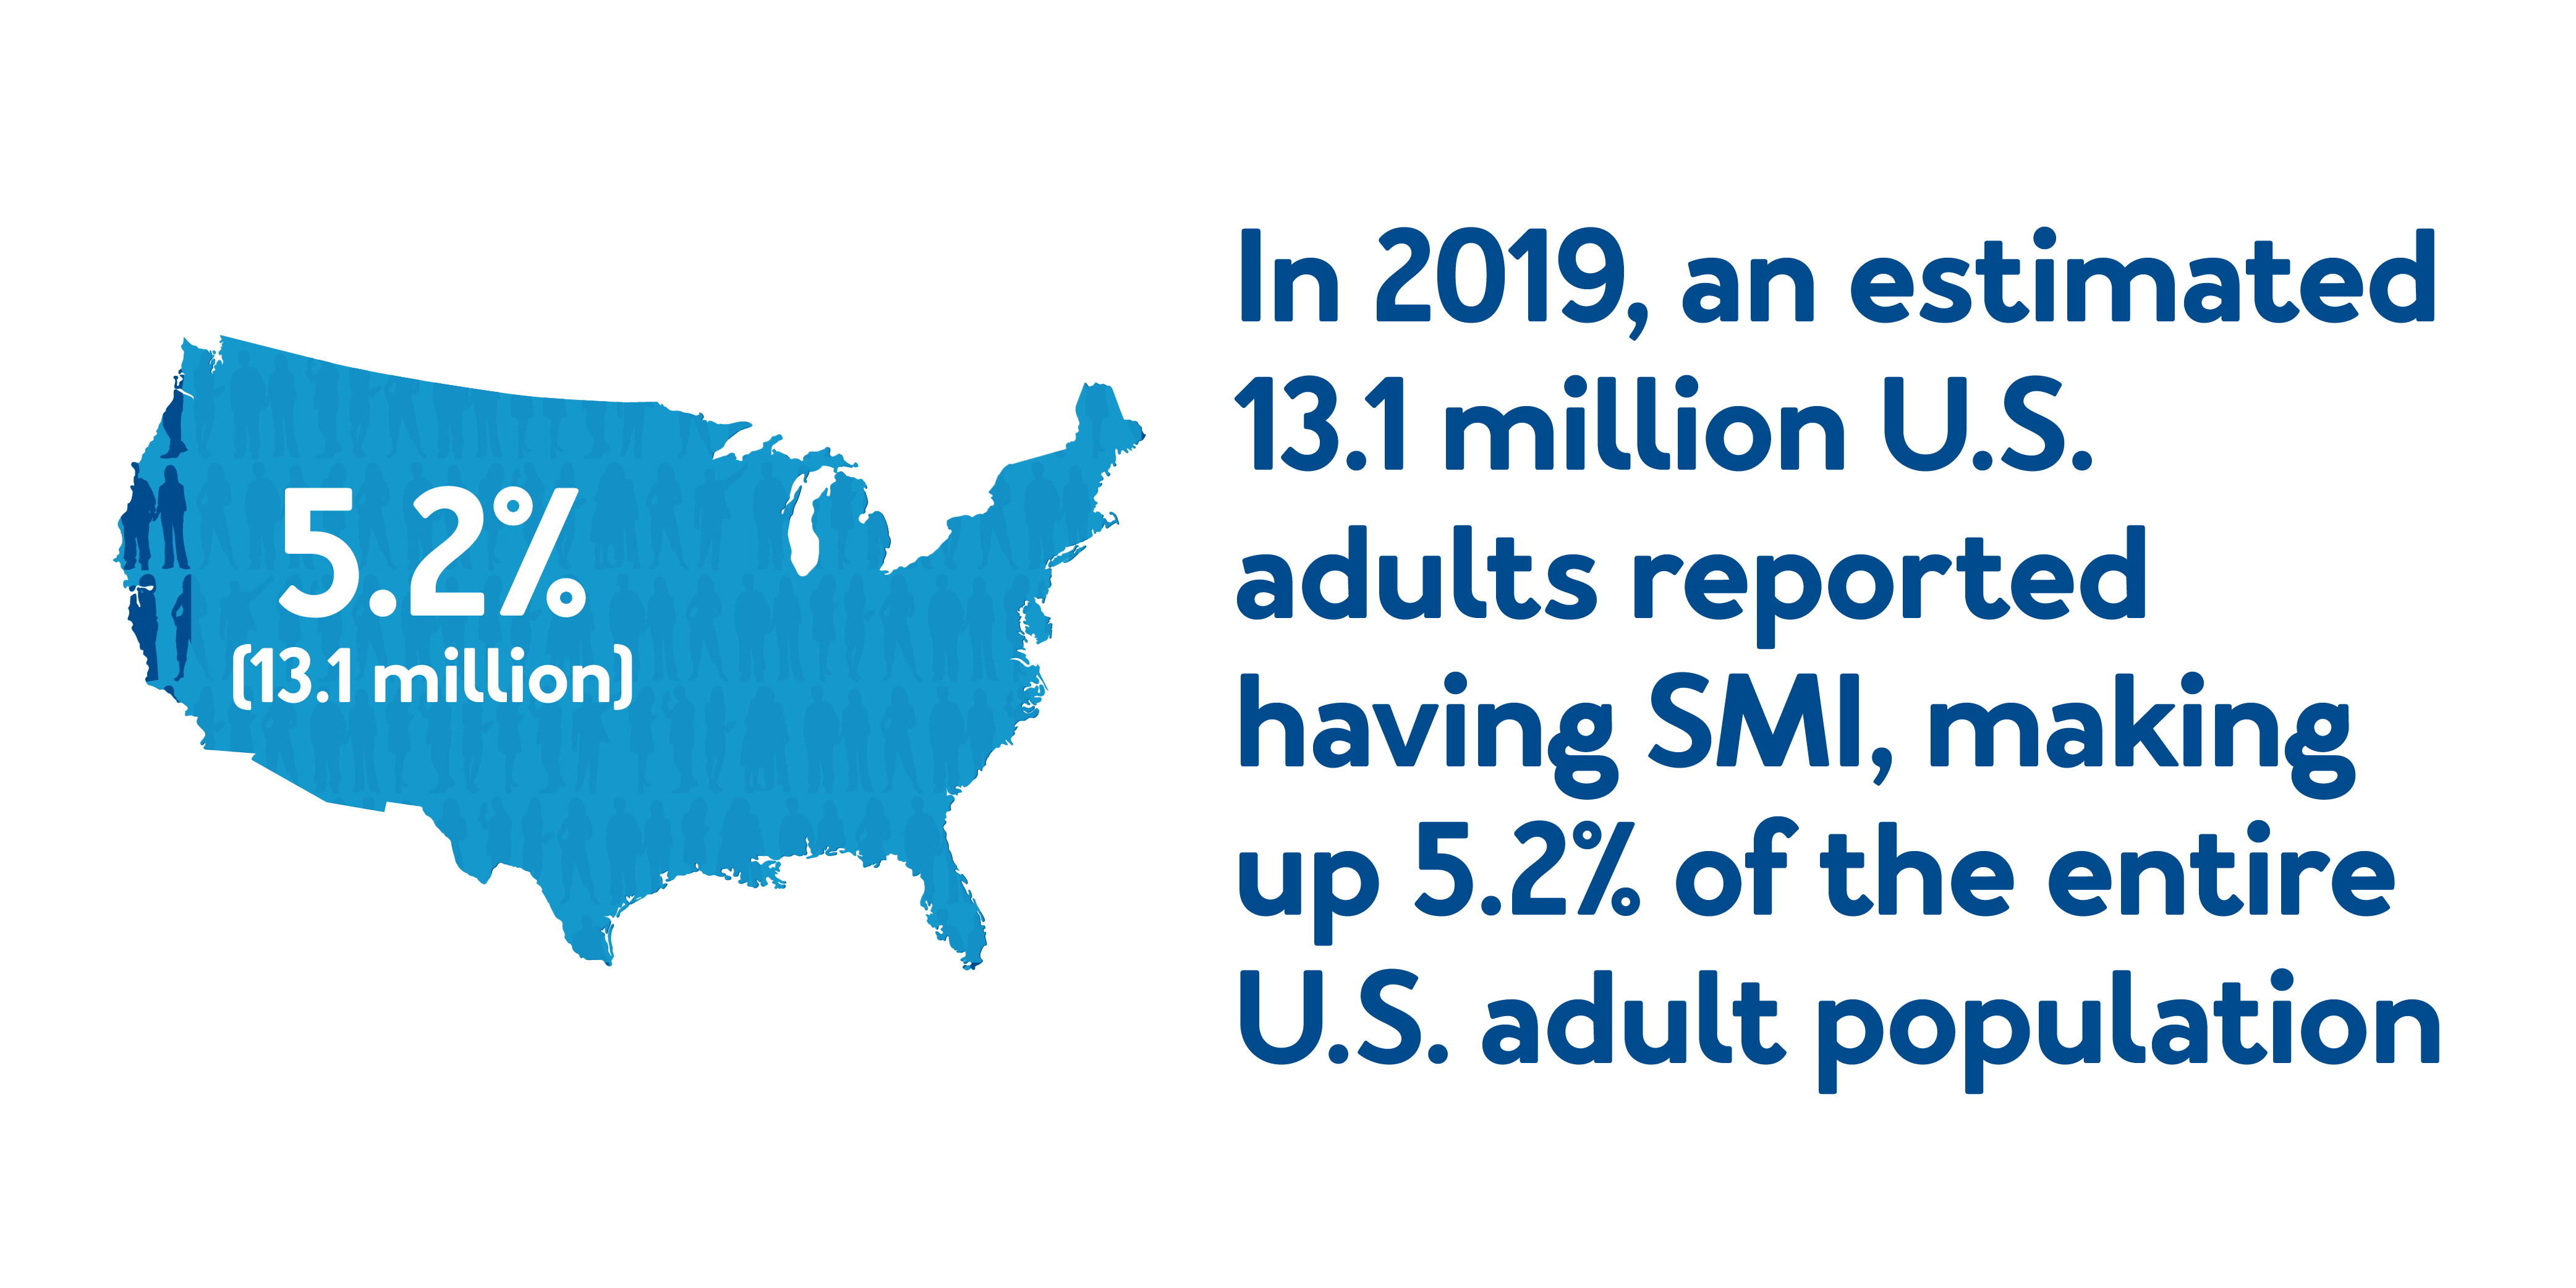 In 2019, an estimated 13.1 million U.S. adults reported having SMI, making up 5.2% of the entire U.S. adult population.